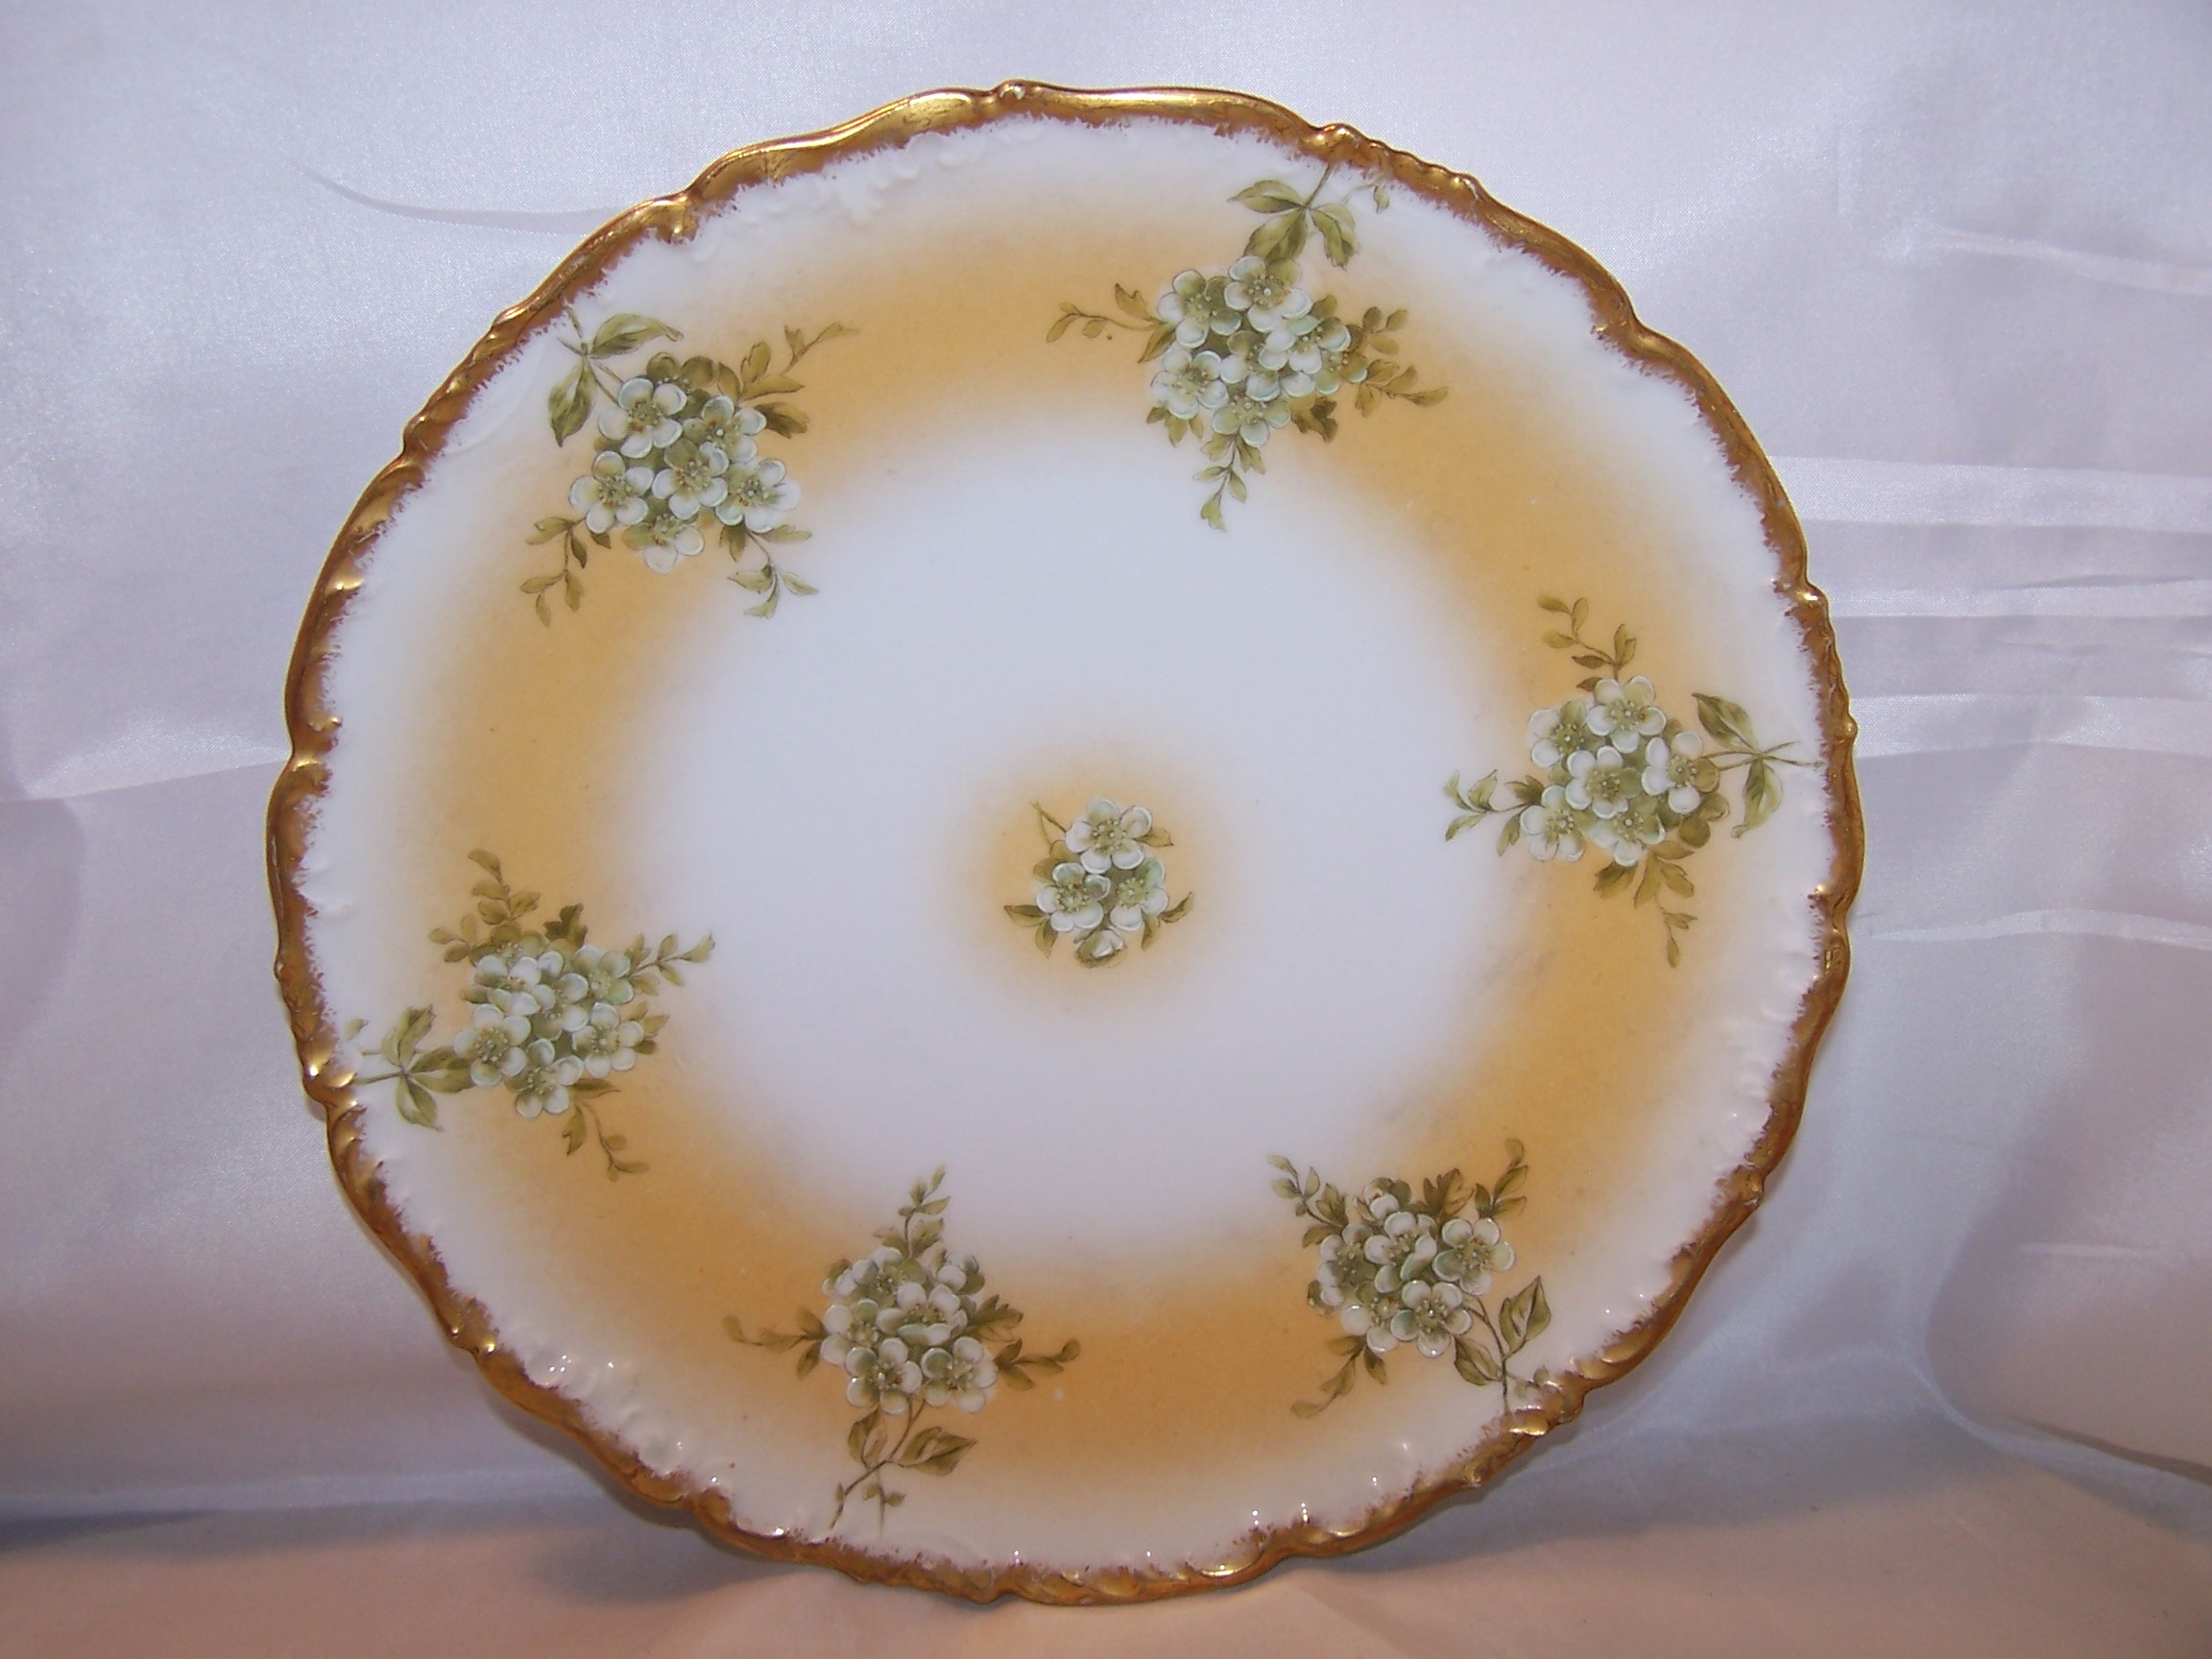 T&V Tressemanes & Vogt Depose Mistletoe Plate, France